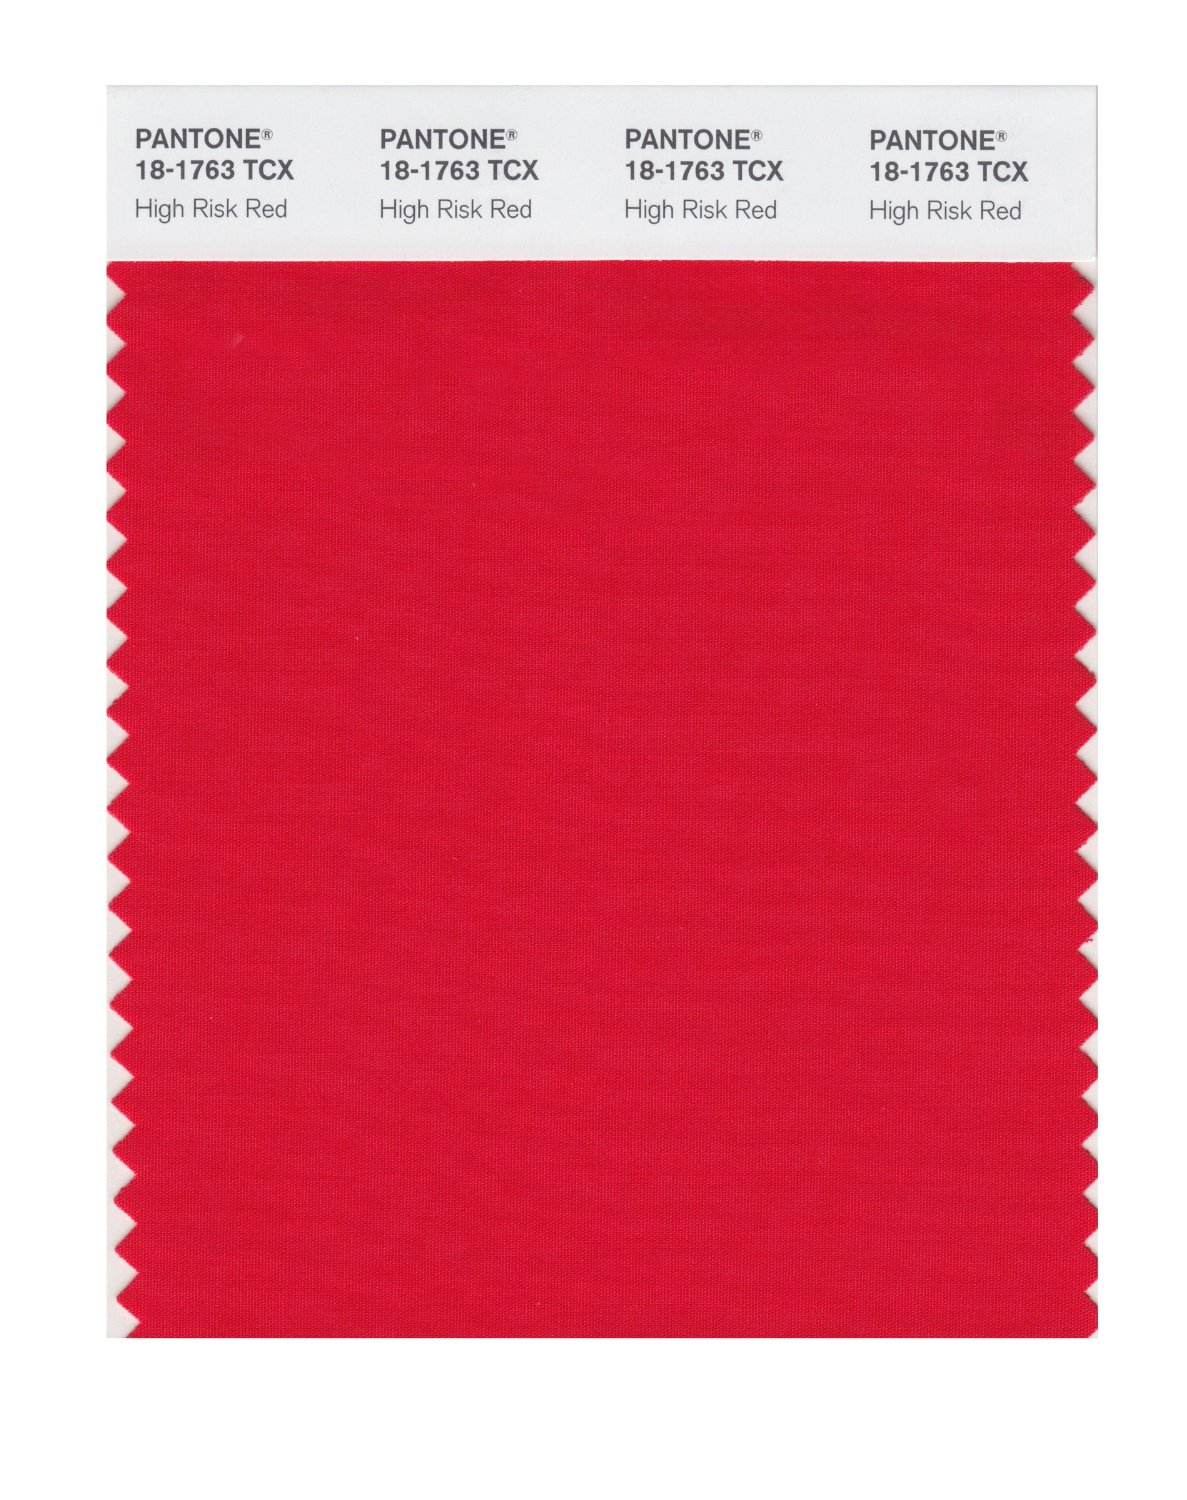 Pantone Smart Swatch 18-1763 High Risk Red